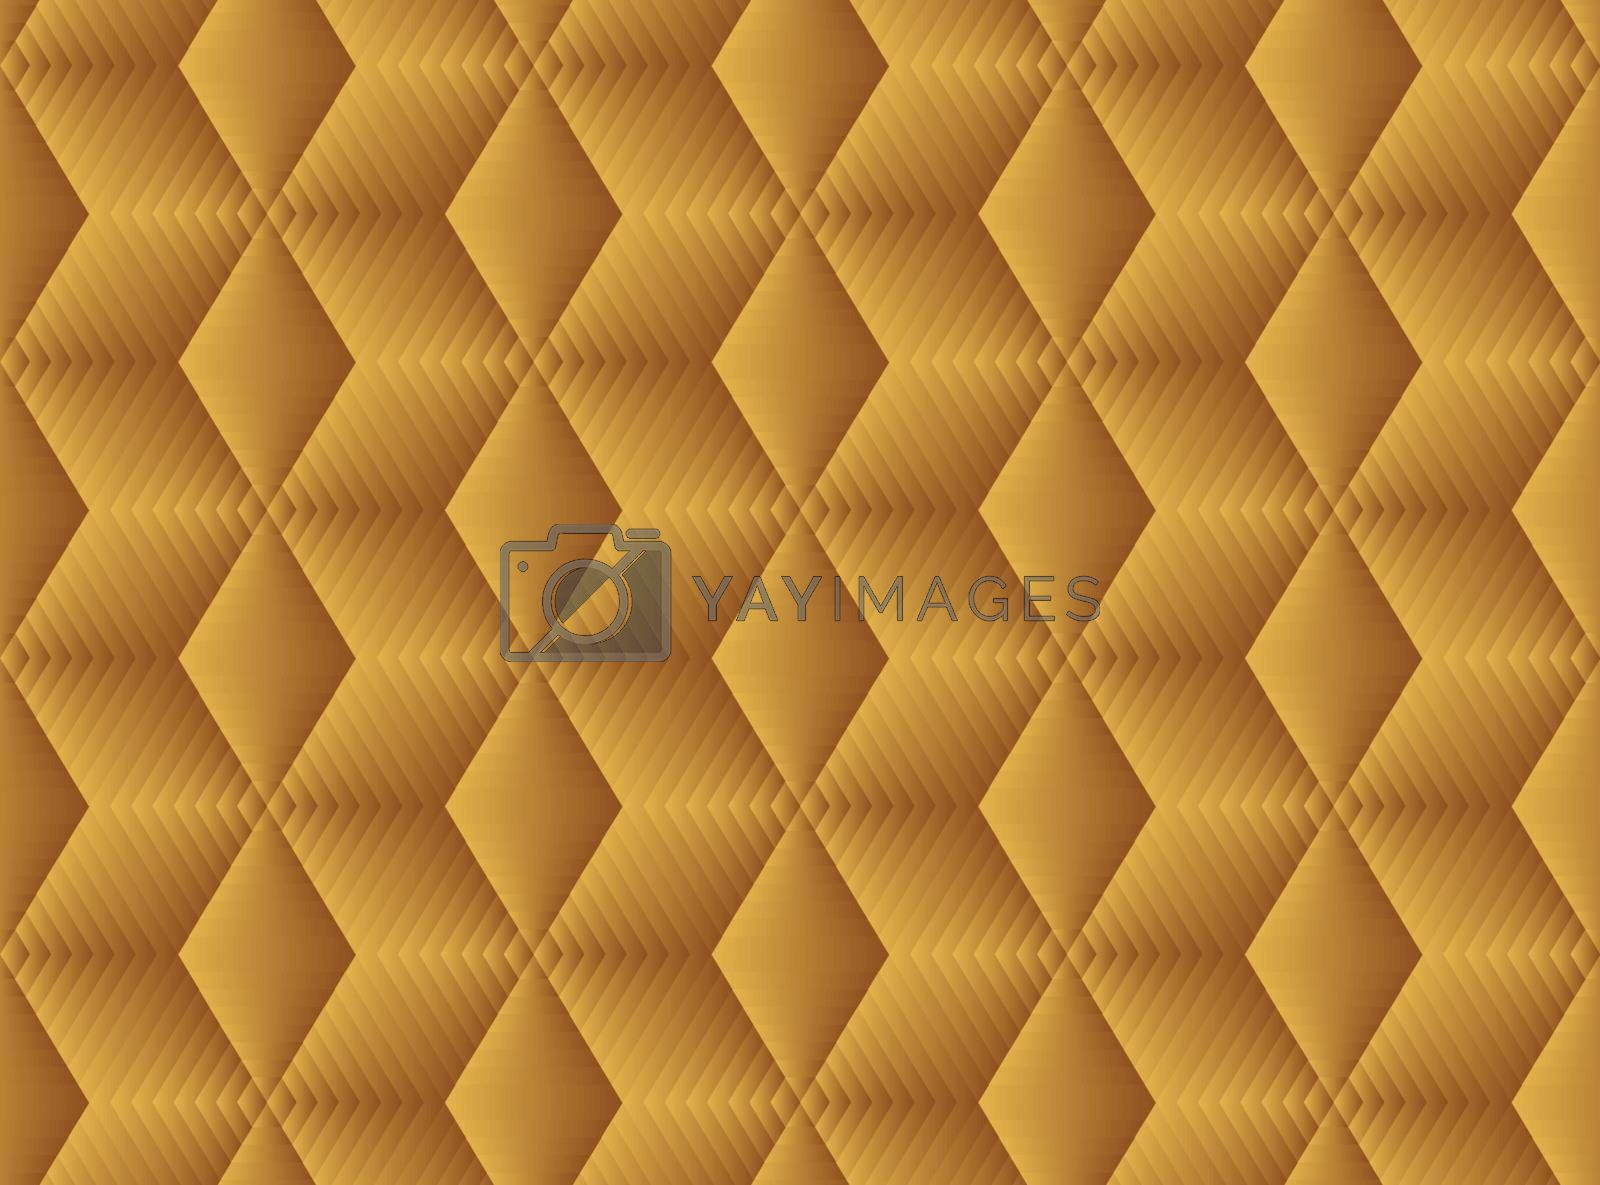 Vector Hand drawn Seamless pattern of gold geometric hexagon tiles. Gold hexagon tiles background with gold flowers. Print for wrapping, web backgrounds, etc.